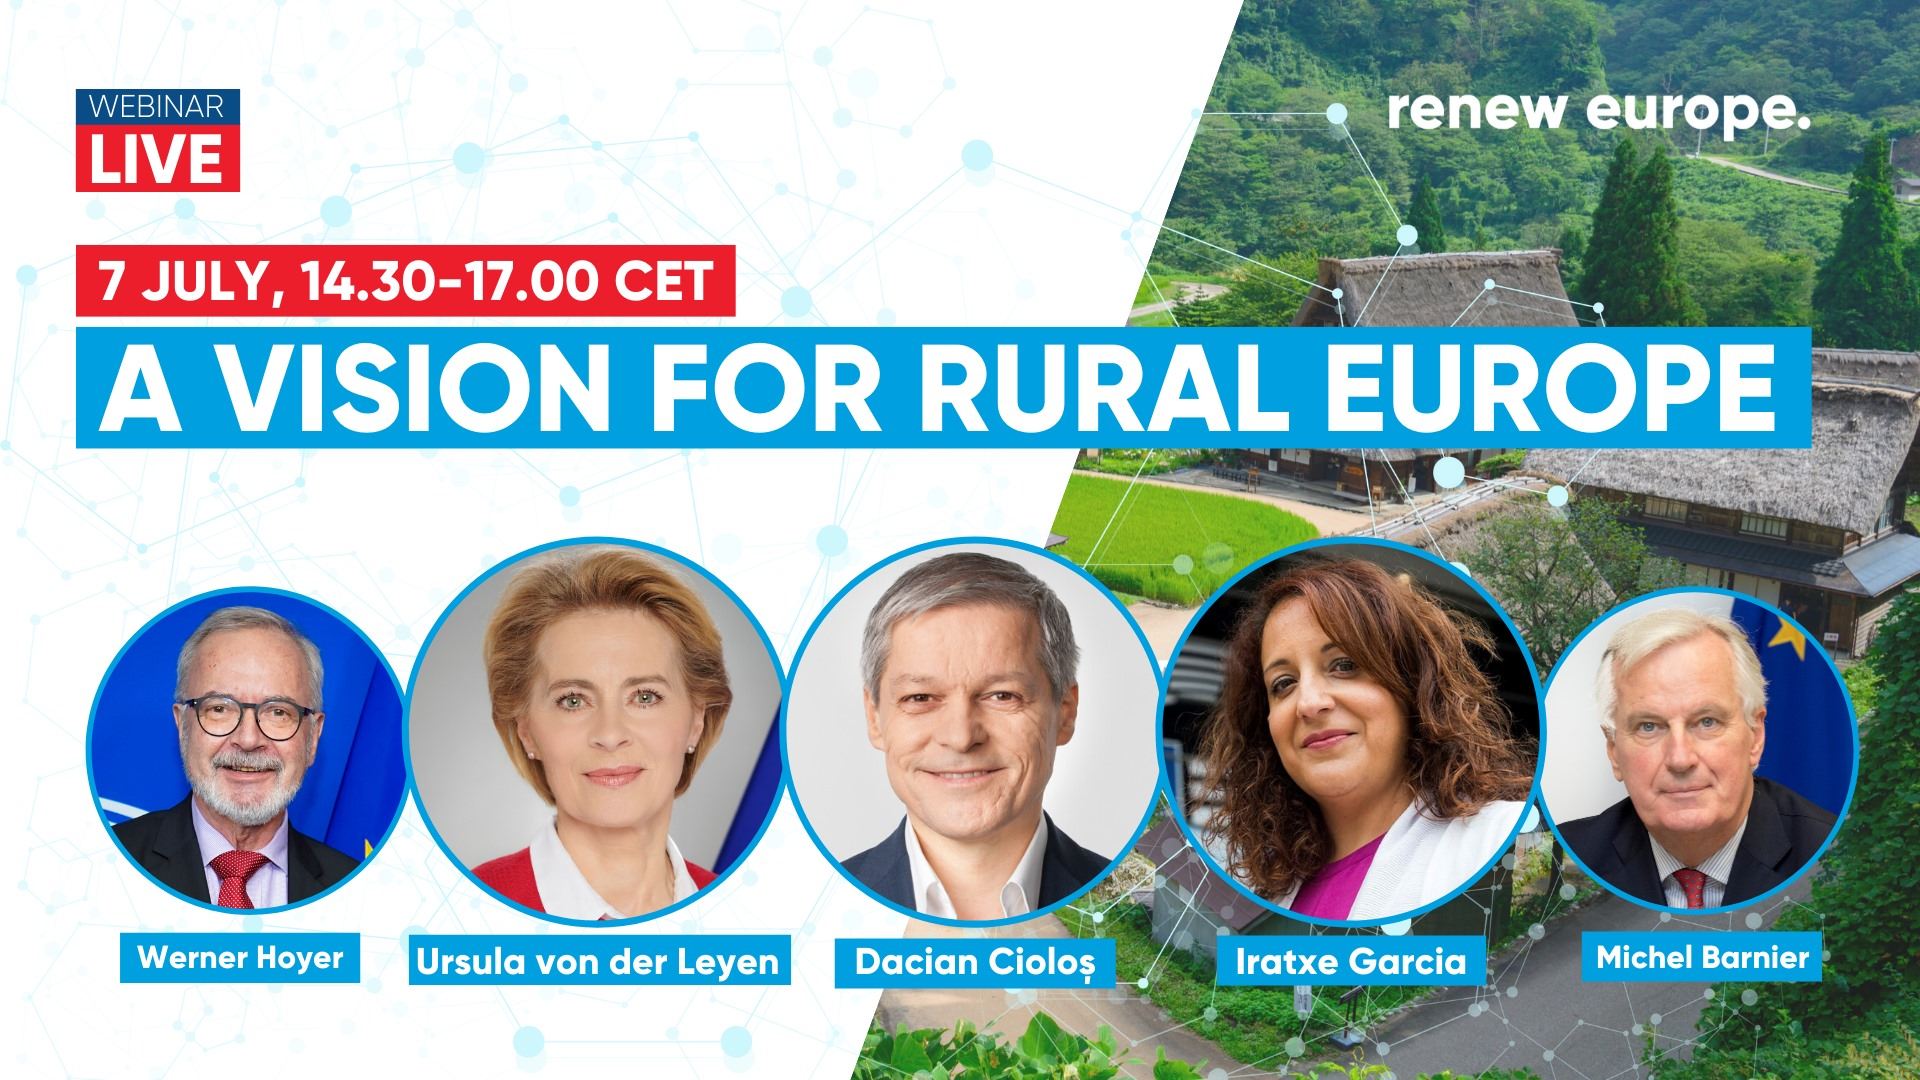 7th July, 14:30 A vision for rural Europe